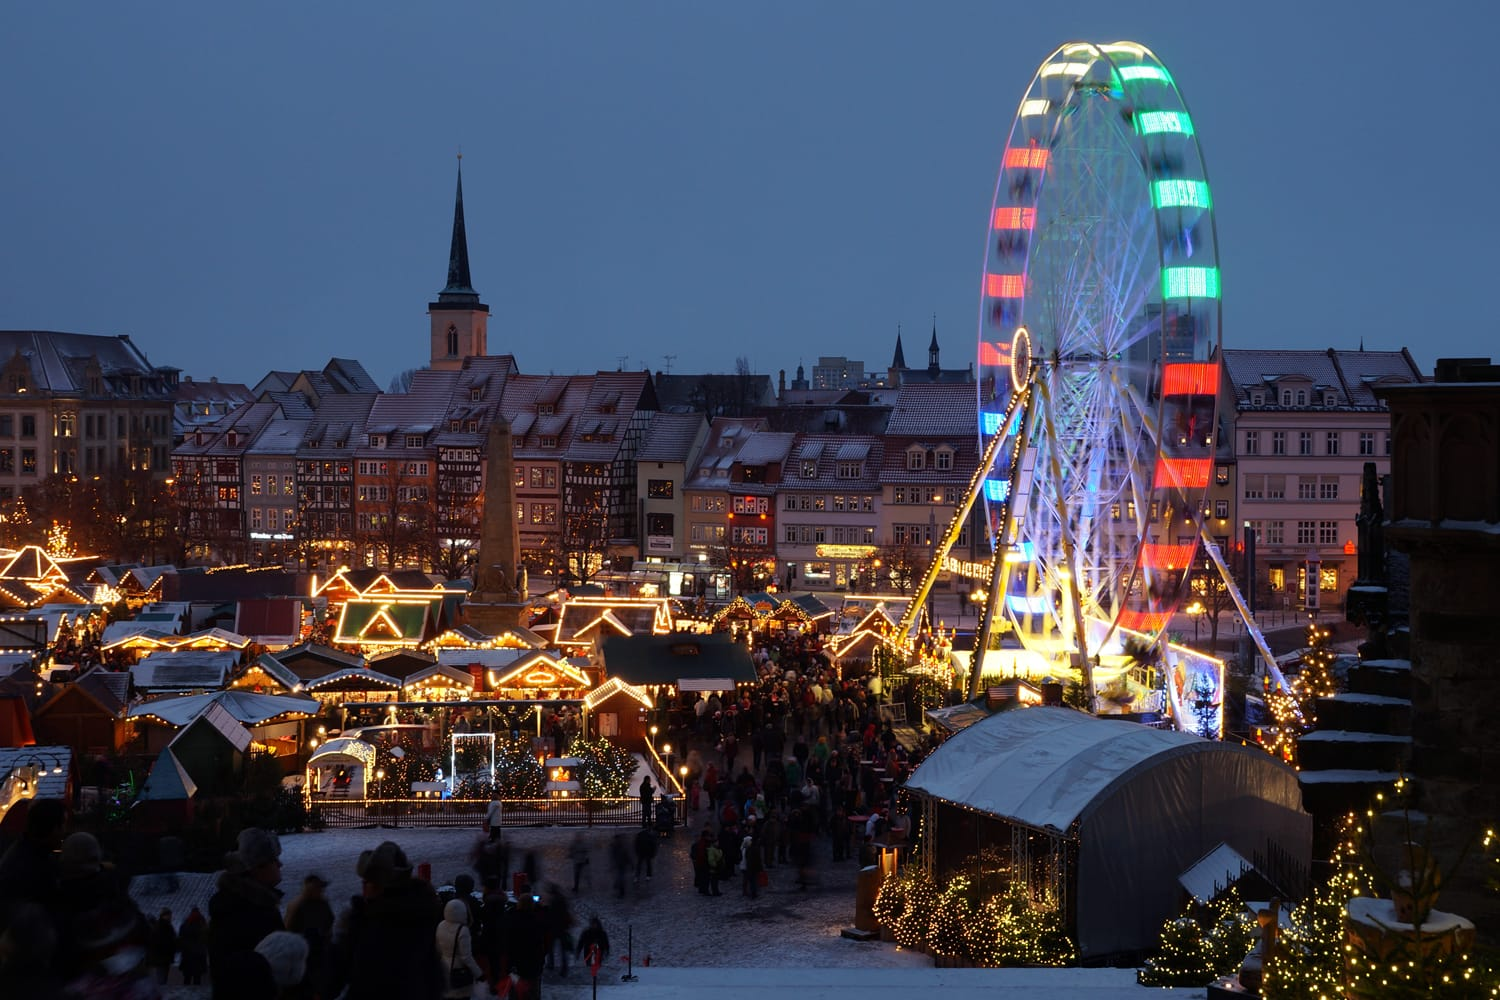 Christmas market in Erfurt Germany